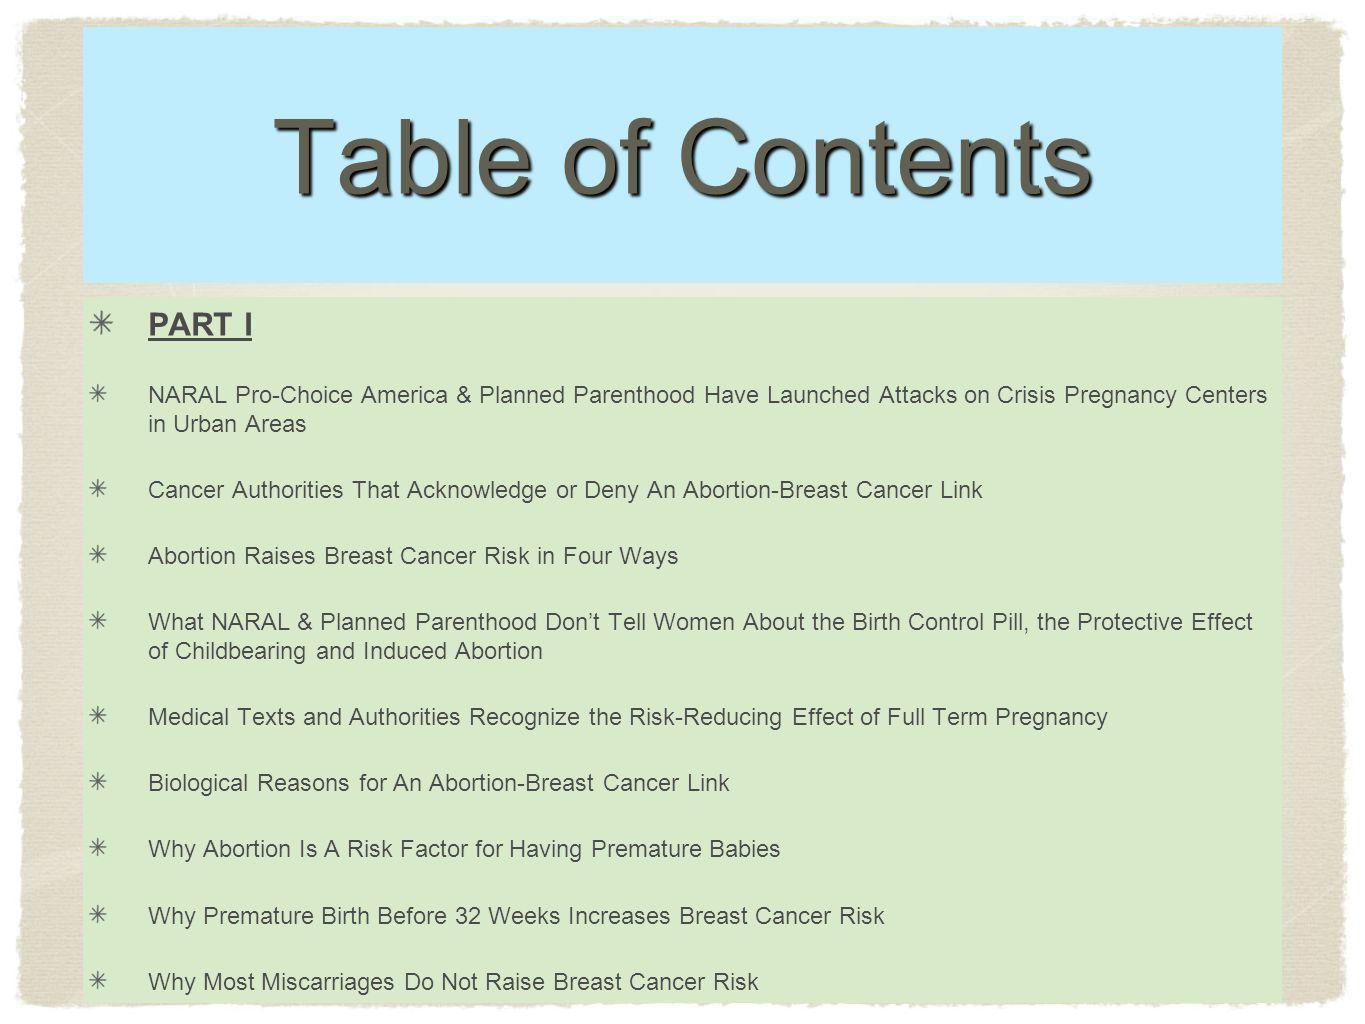 Table of Contents PART I NARAL Pro-Choice America & Planned Parenthood Have Launched Attacks on Crisis Pregnancy Centers in Urban Areas Cancer Authorities That Acknowledge or Deny An Abortion-Breast Cancer Link Abortion Raises Breast Cancer Risk in Four Ways What NARAL & Planned Parenthood Dont Tell Women About the Birth Control Pill, the Protective Effect of Childbearing and Induced Abortion Medical Texts and Authorities Recognize the Risk-Reducing Effect of Full Term Pregnancy Biological Reasons for An Abortion-Breast Cancer Link Why Abortion Is A Risk Factor for Having Premature Babies Why Premature Birth Before 32 Weeks Increases Breast Cancer Risk Why Most Miscarriages Do Not Raise Breast Cancer Risk